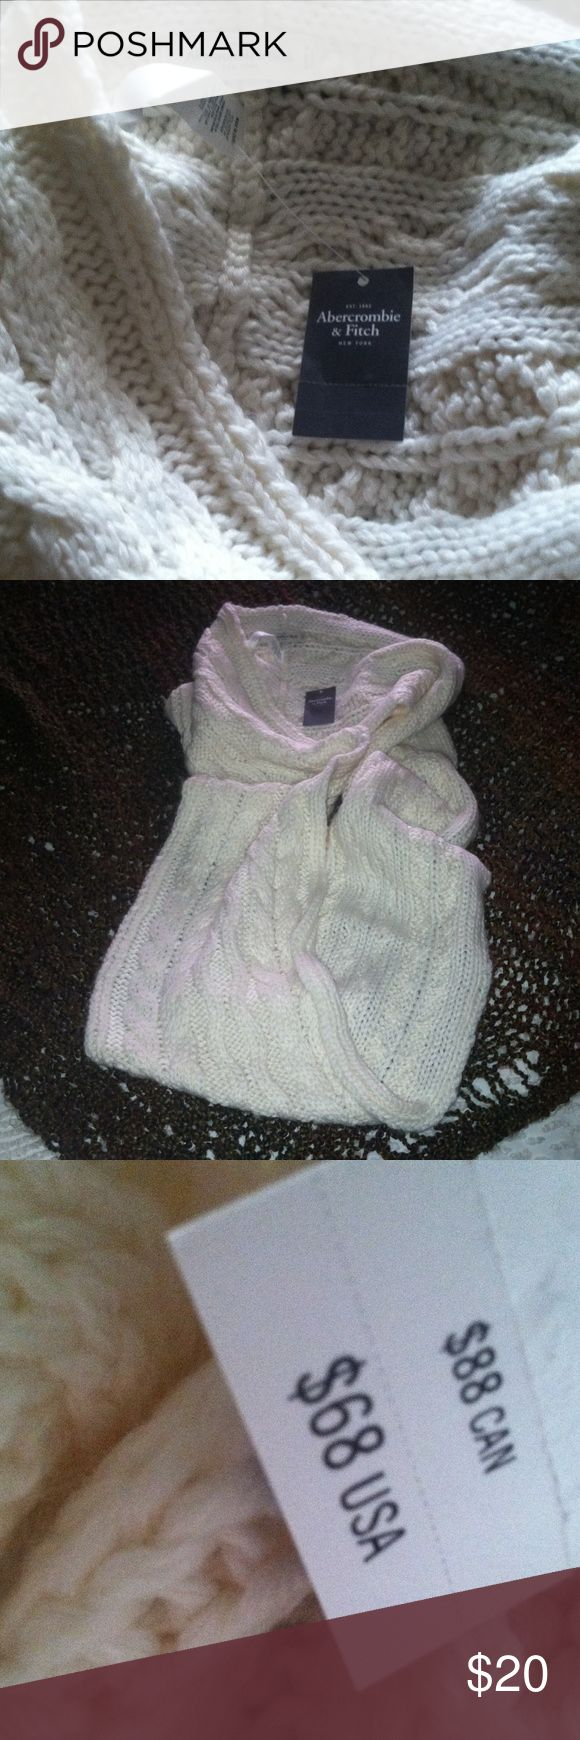 Abercrombie&fitch NWT Scarf Infinity Abercrombie & Fitch Accessories Scarves & Wraps